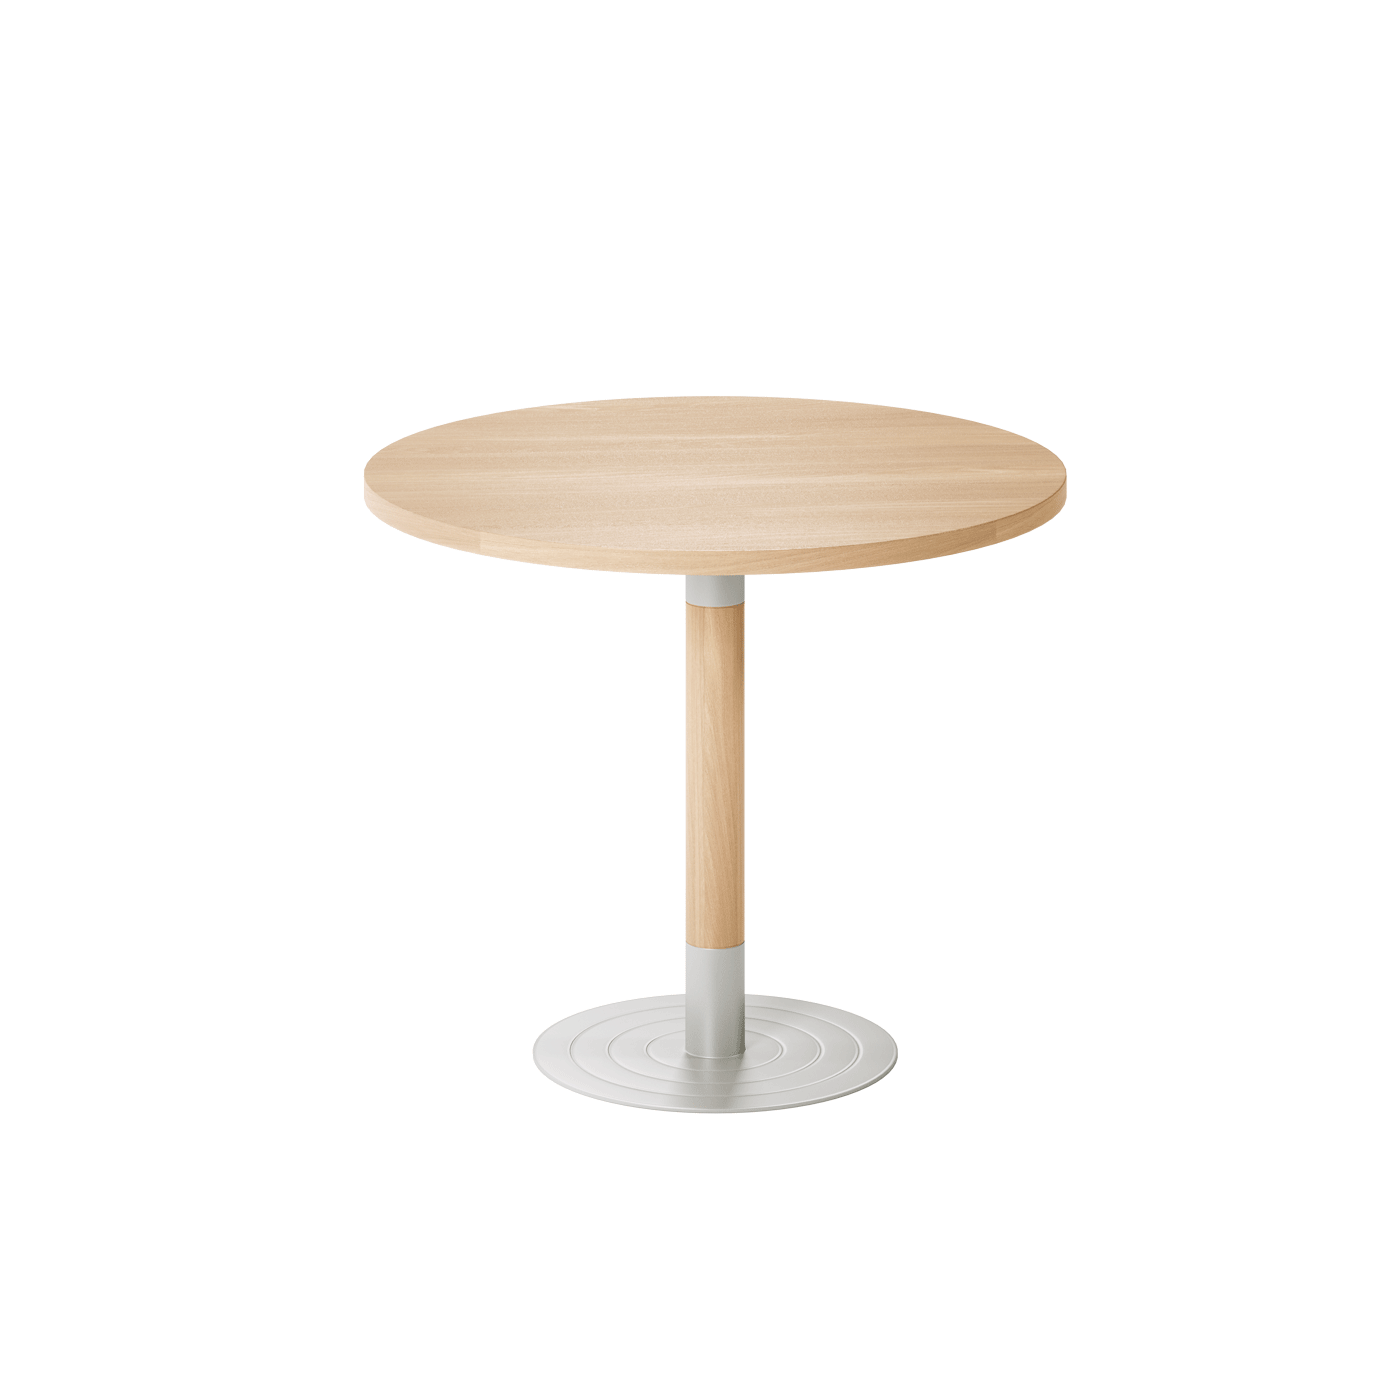 Aged Care Dining Stem Round Pedestal Table